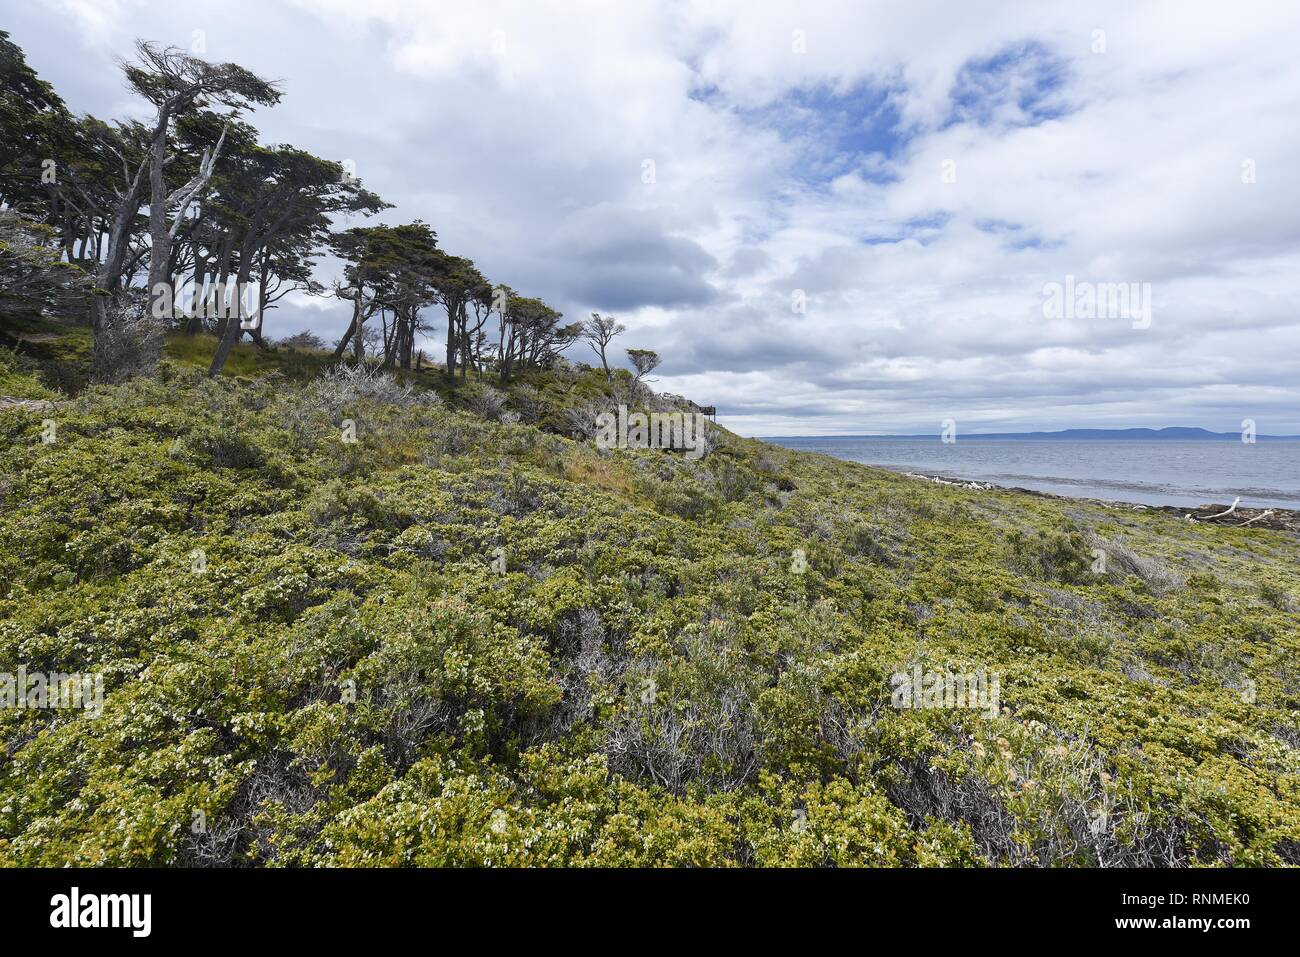 Coastal forest with bush land at the Strait of Magellan near Punta Arenas, Patagonia, Chile - Stock Image